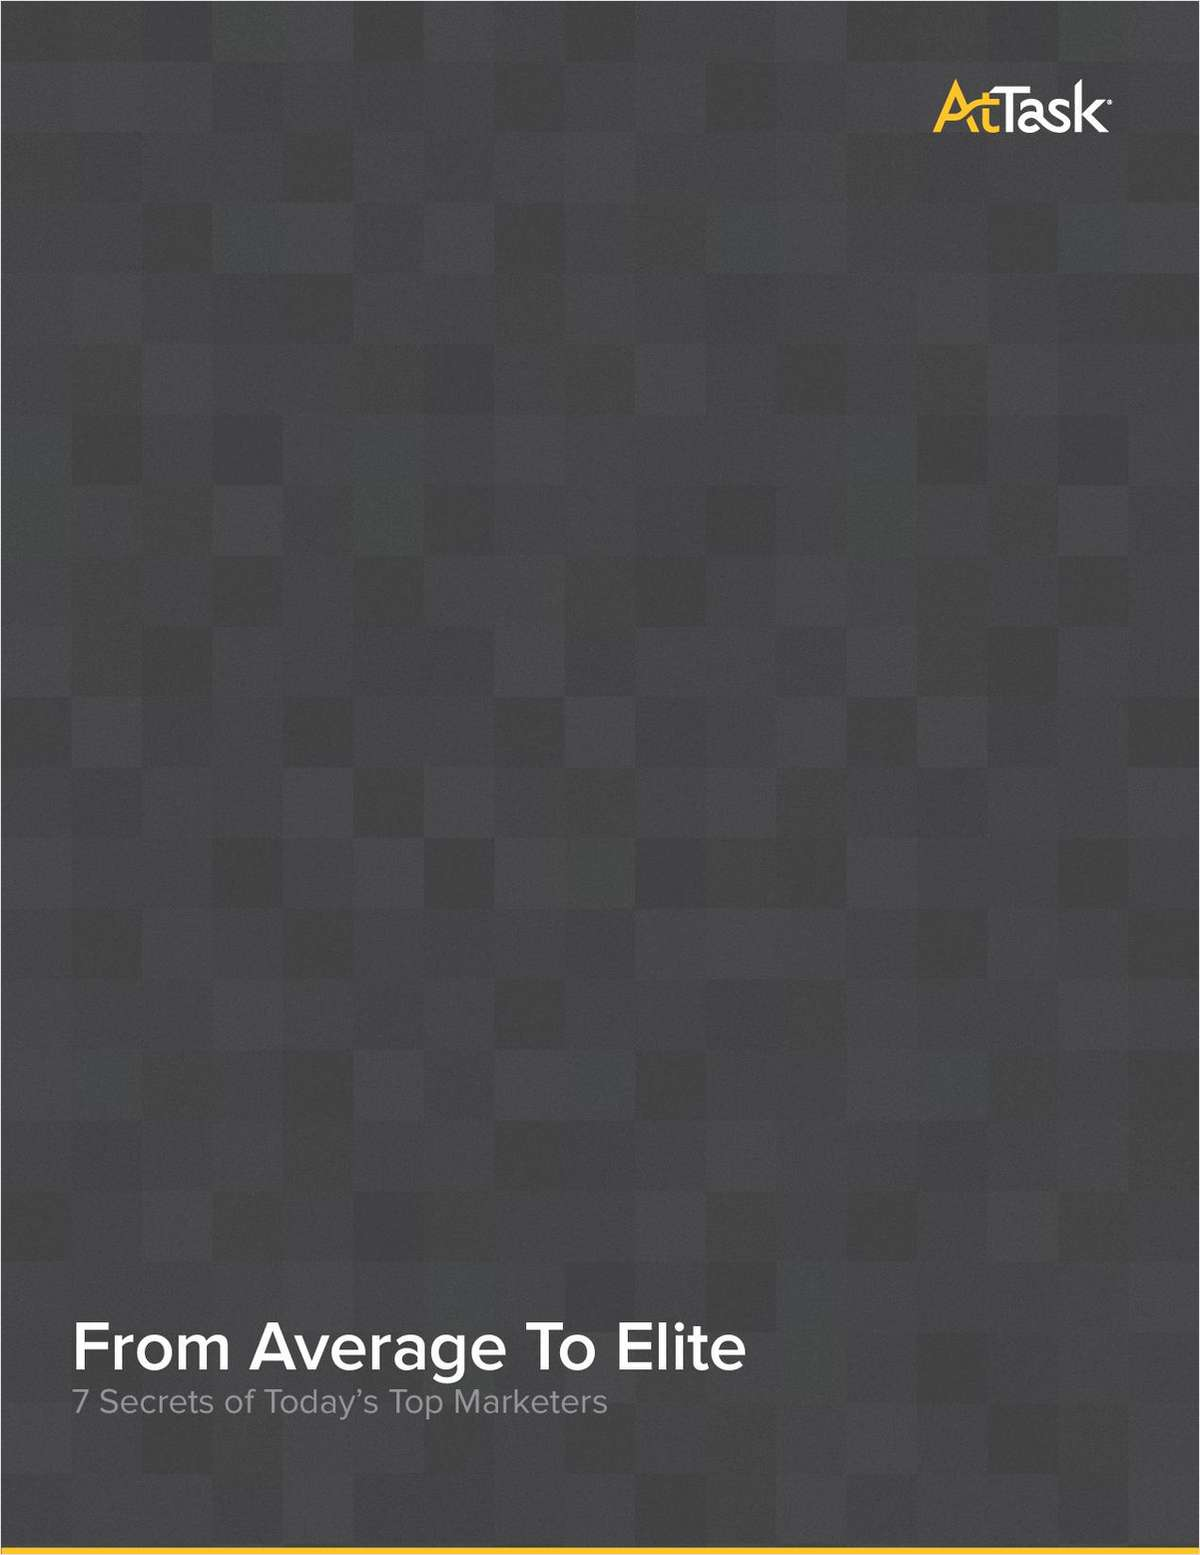 From Average to Elite: 7 Secrets of Today's Top Marketers